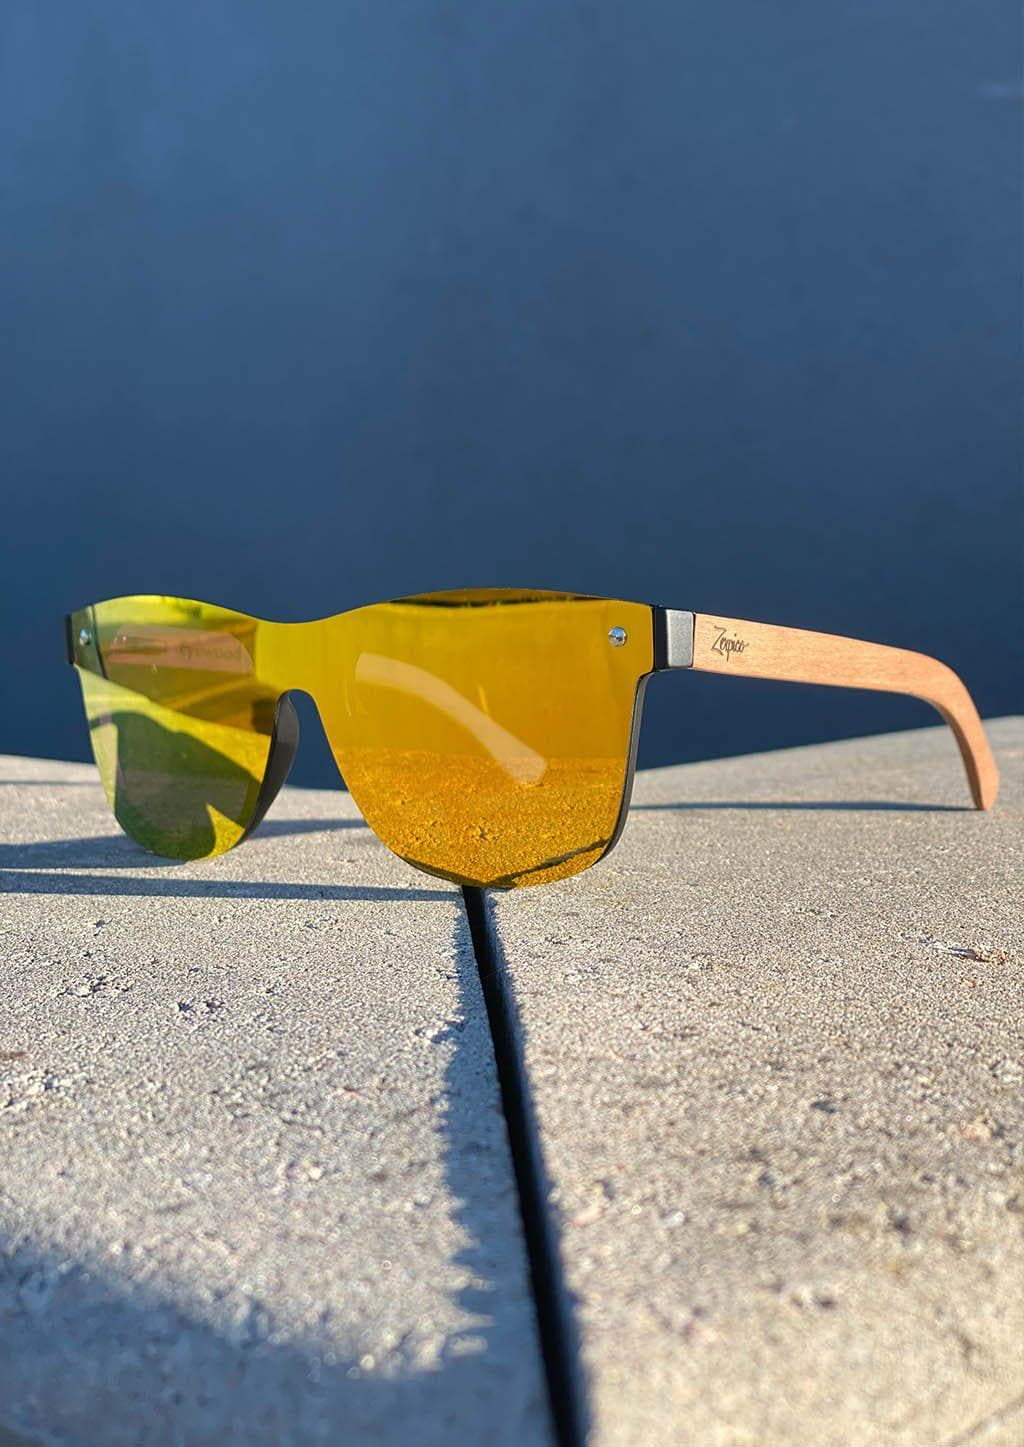 Eyewood tomorrow is our modern cool take on classic models. This is Scorpius with yellow mirror lenses. Nice wooden sunglasses outside in the sun in Sweden.